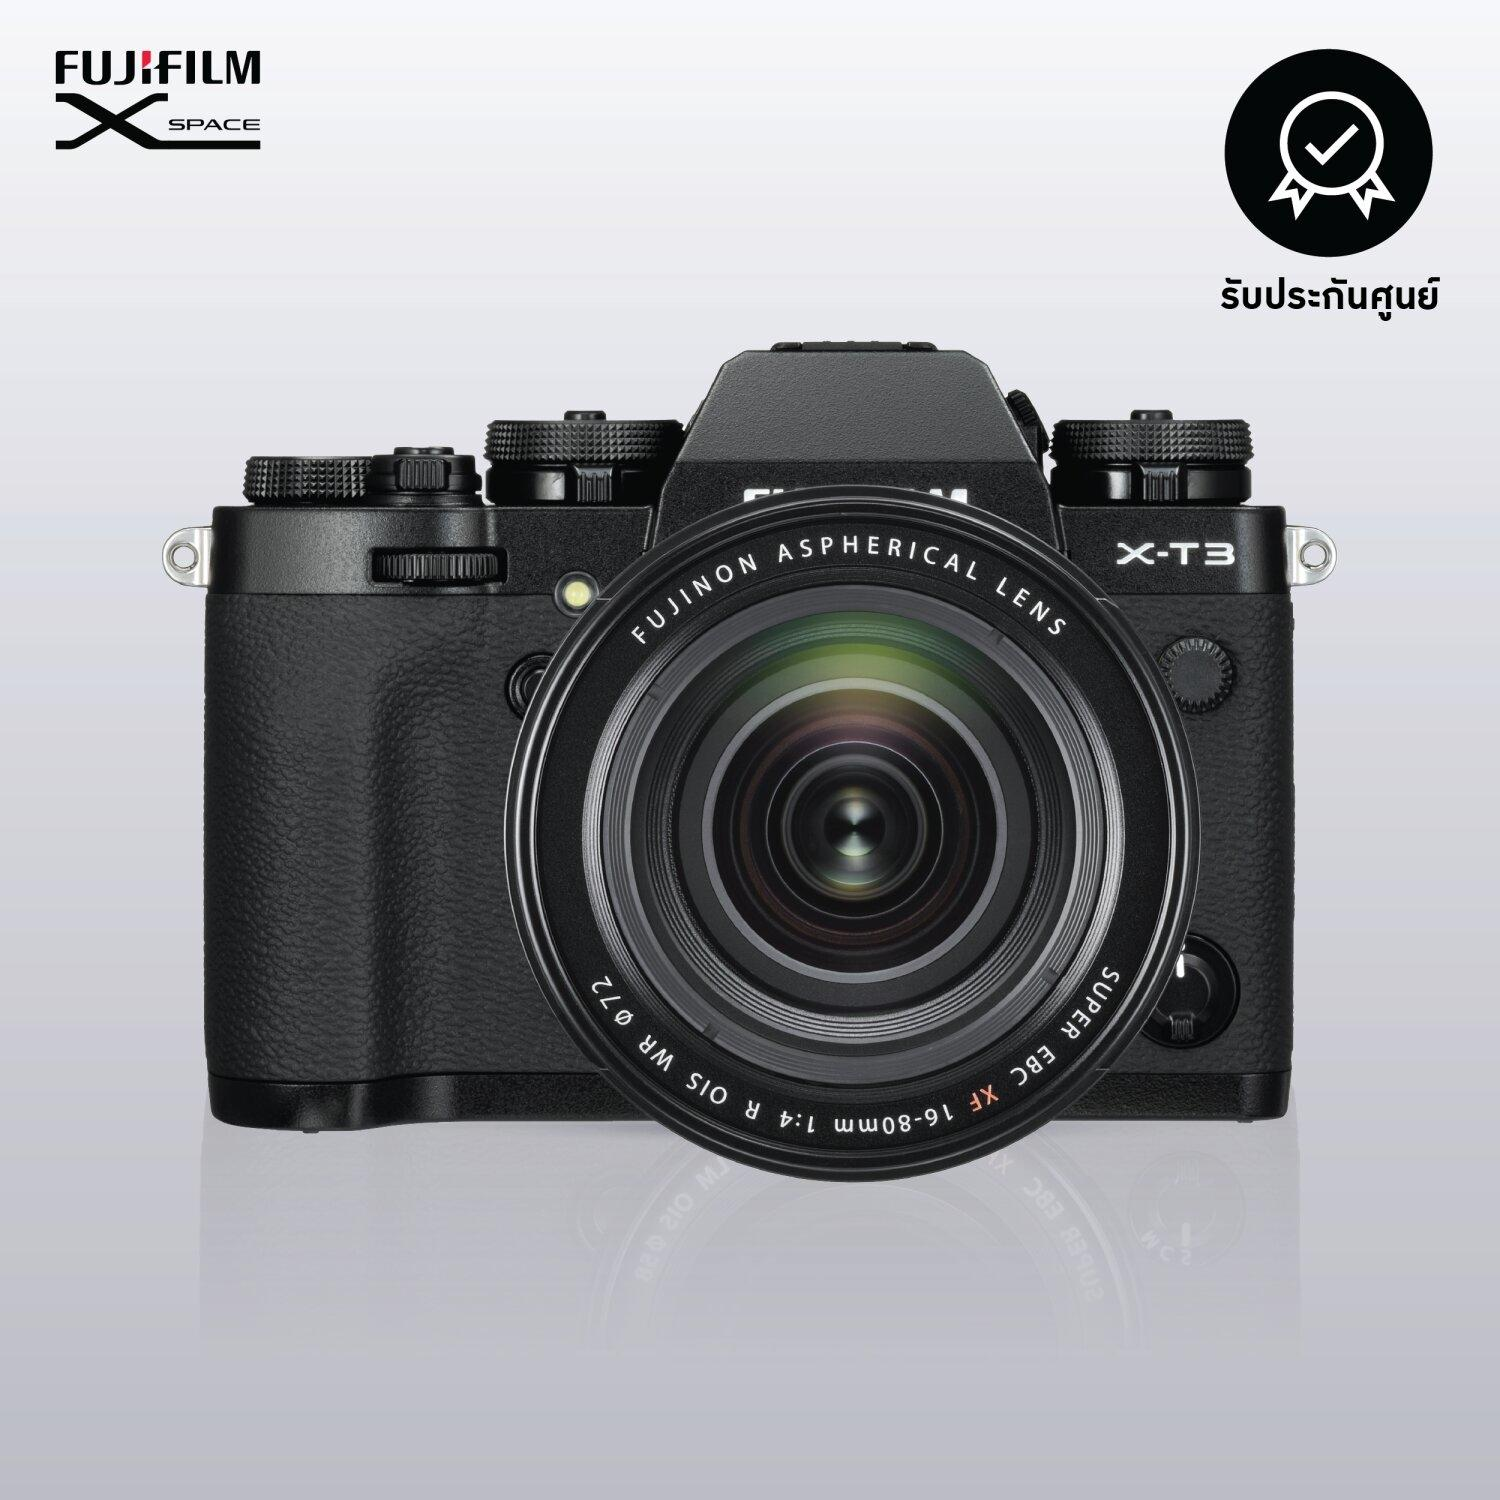 FUJIFILM X-T3/KIT16-80mm (Black)